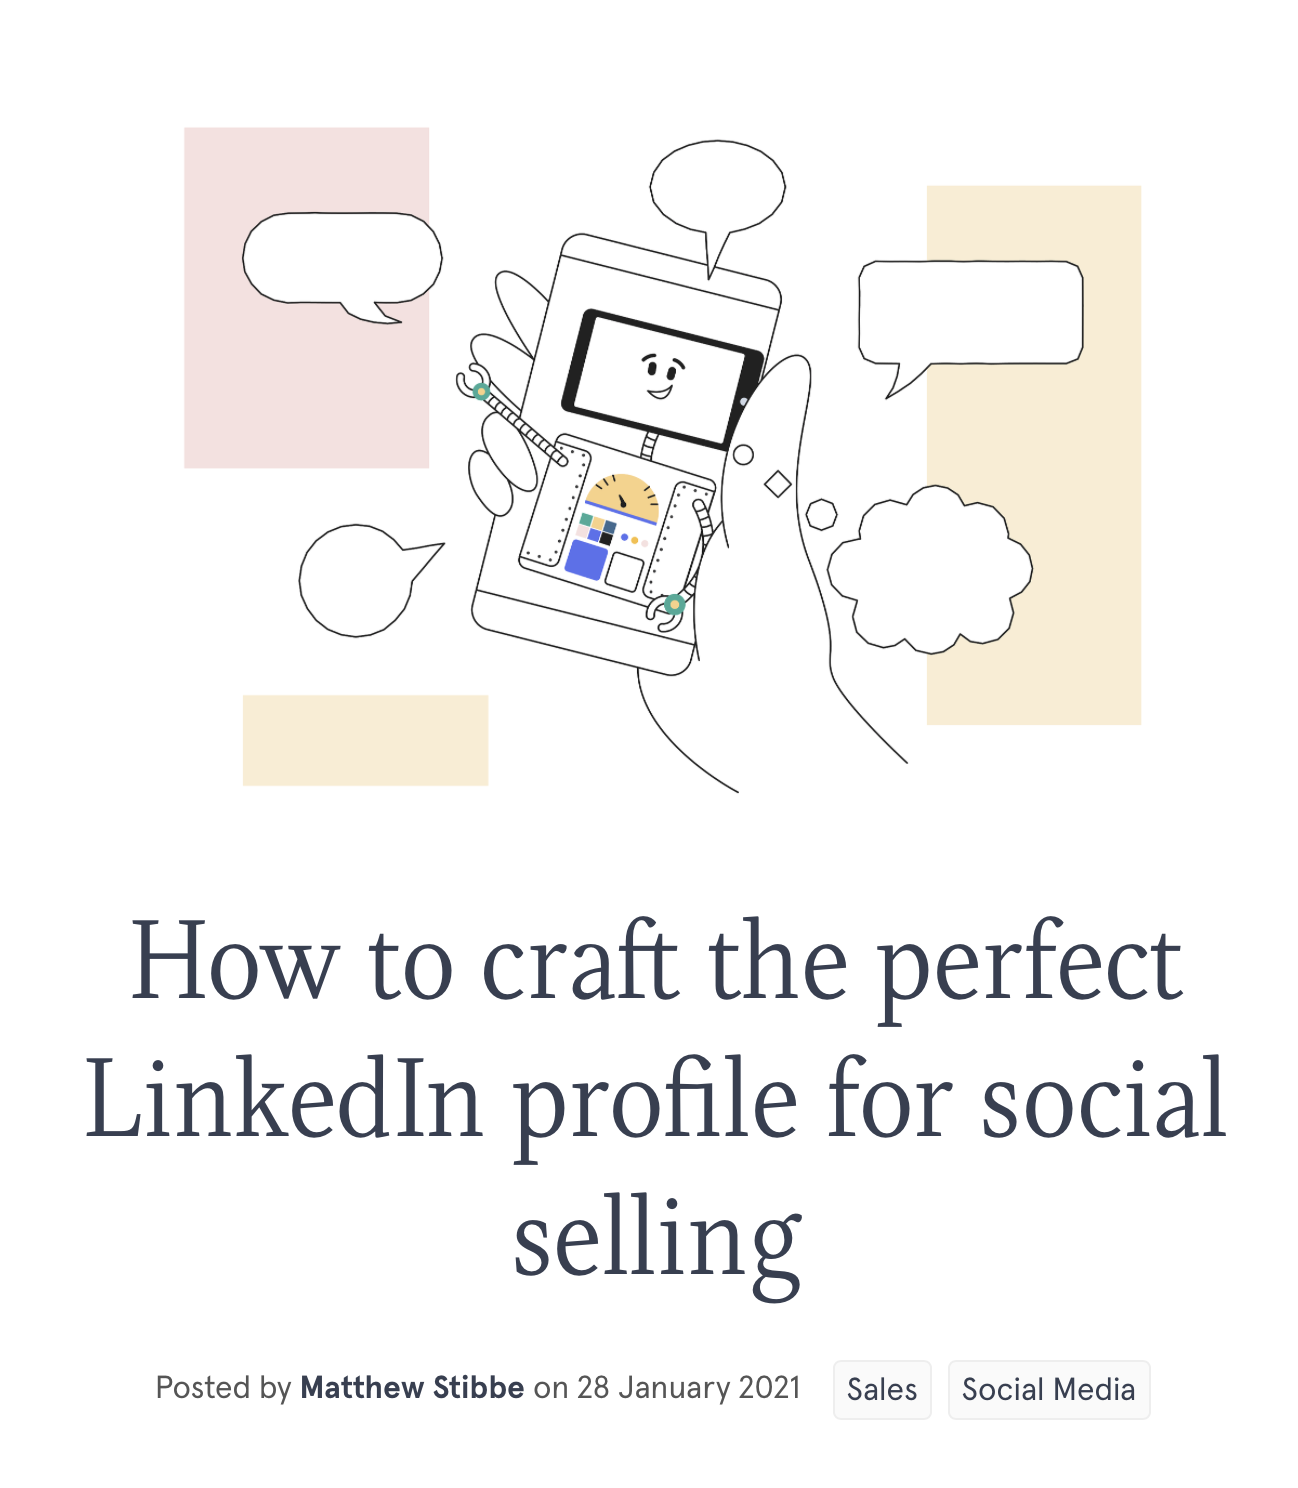 "This image is a screenshot from Articulate Marketing's website. Here there is a cartoon of a phone with a smiley face and speech bubbles coming off from it. Underneath, there is a heading saying, ""Hot to craft the perfect LinkedIn profile for social selling""."